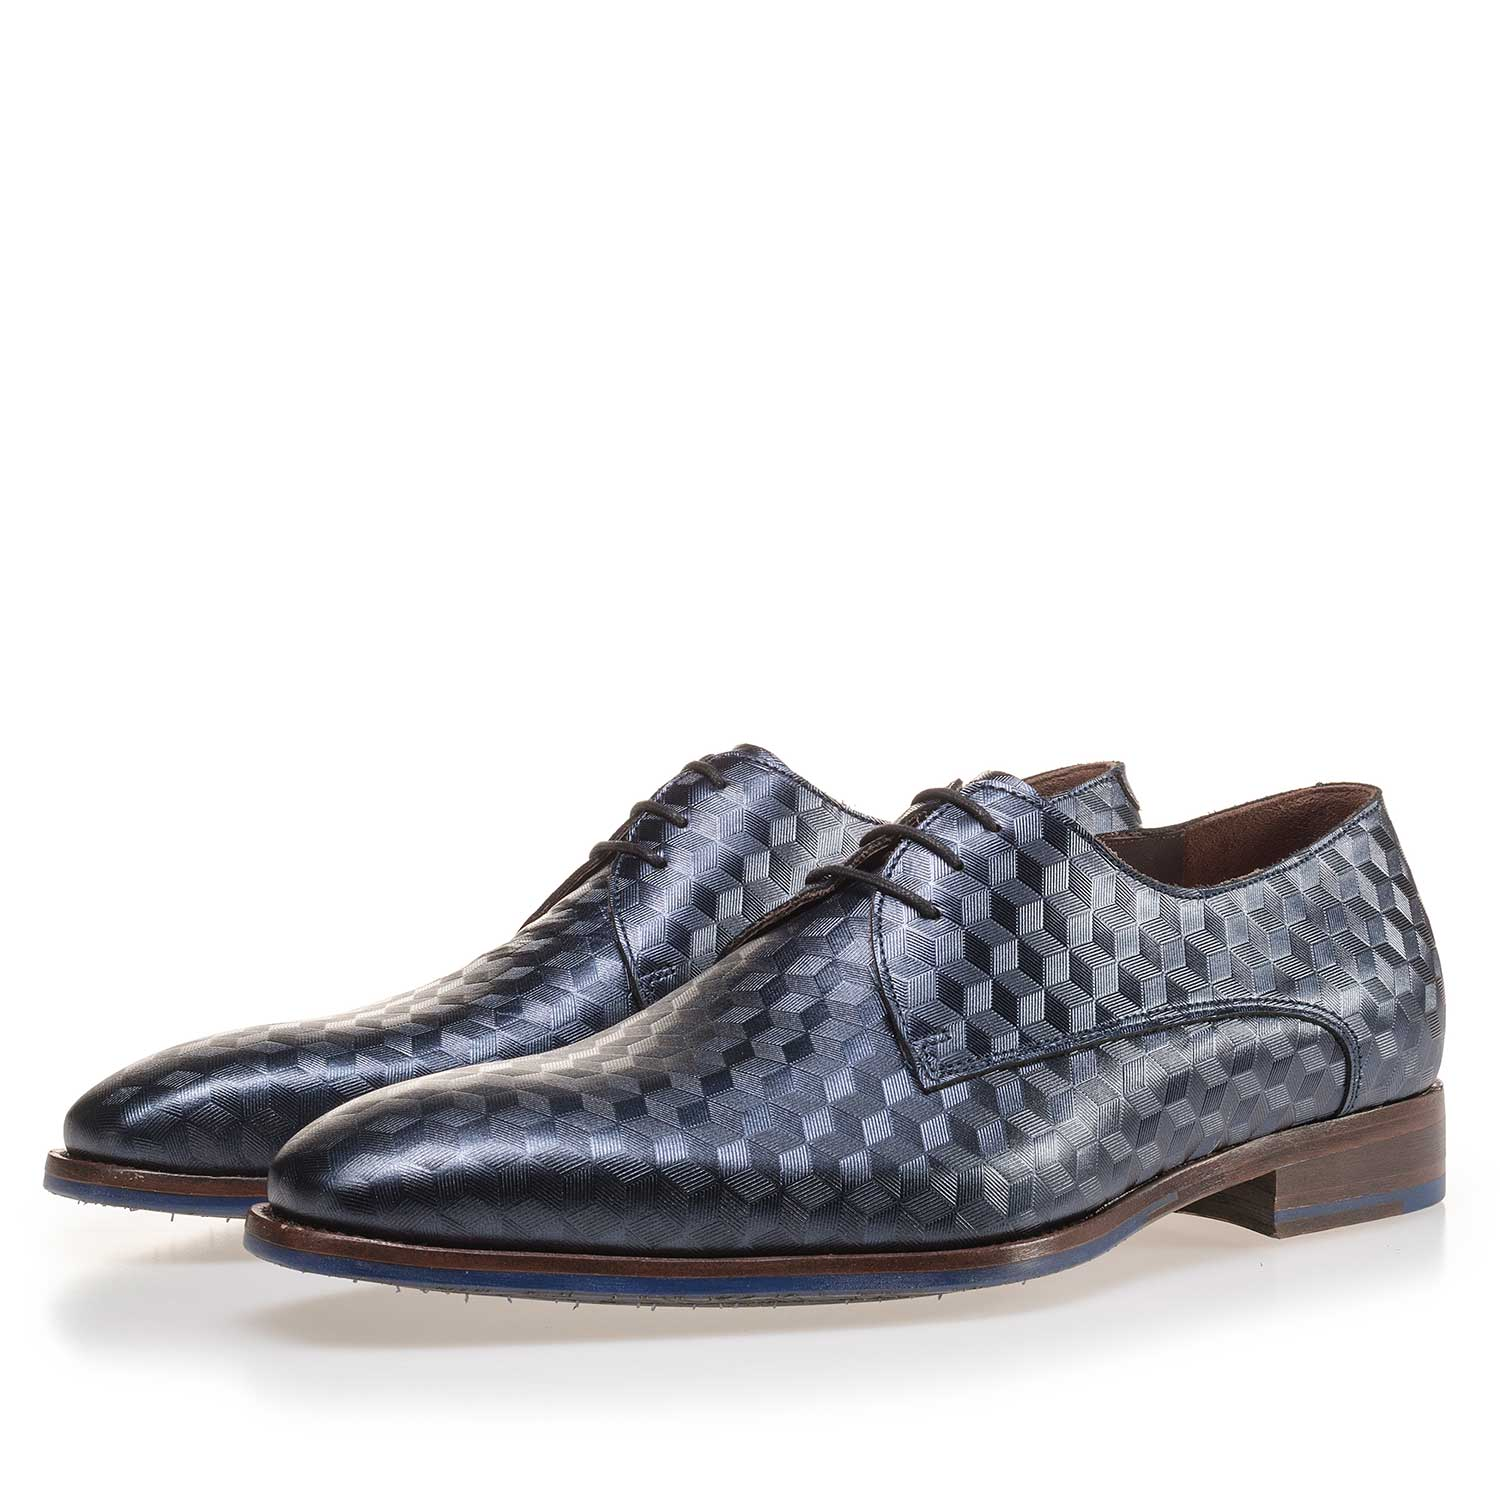 14168/01 - Blue leather lace shoe finished with a hexagon print